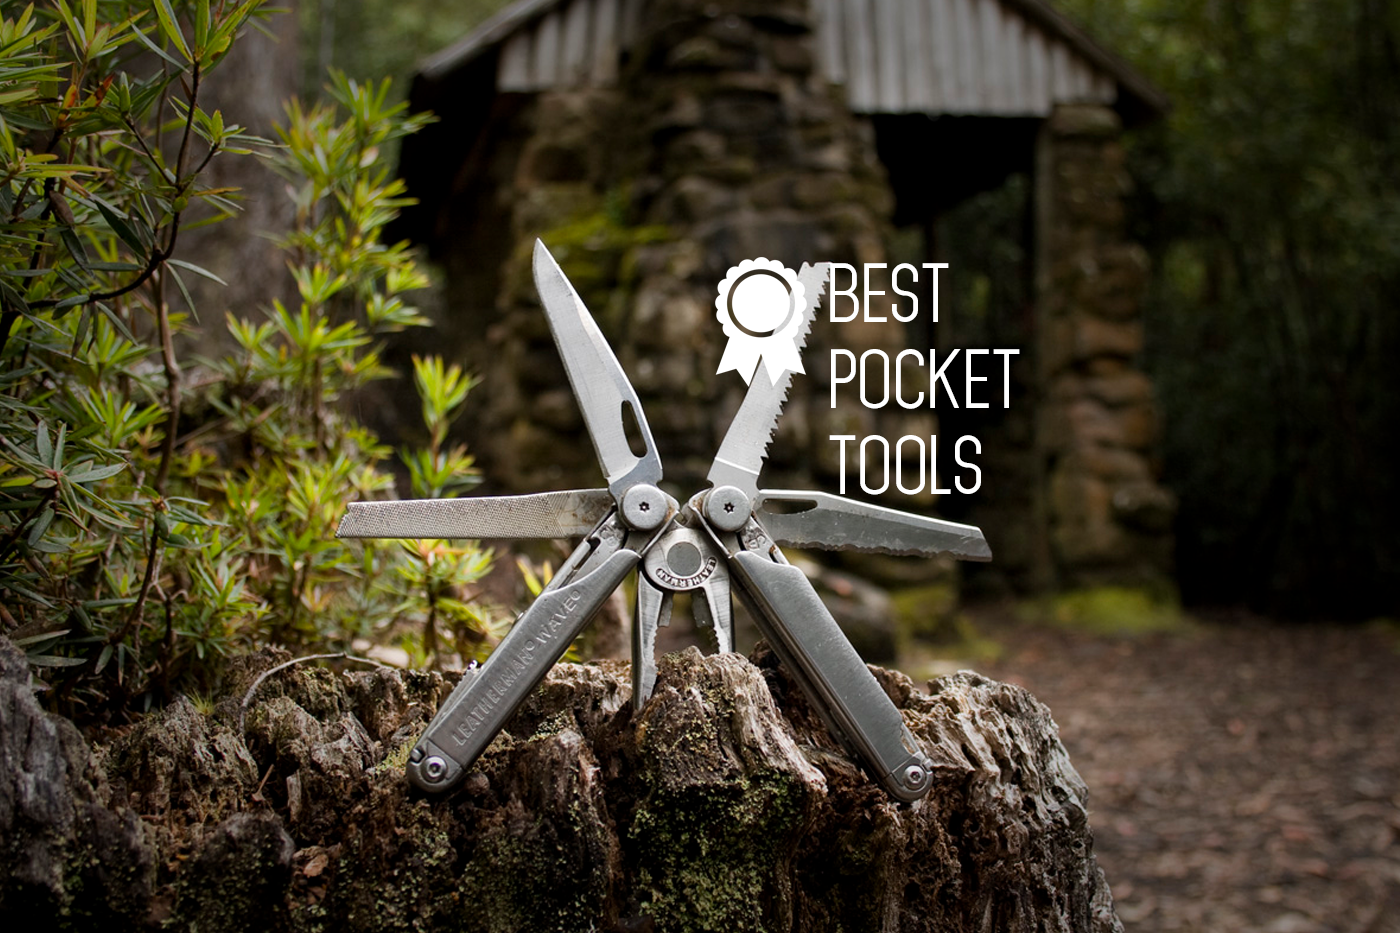 best pocket tools and multitools | Buy it for life (BIFL)